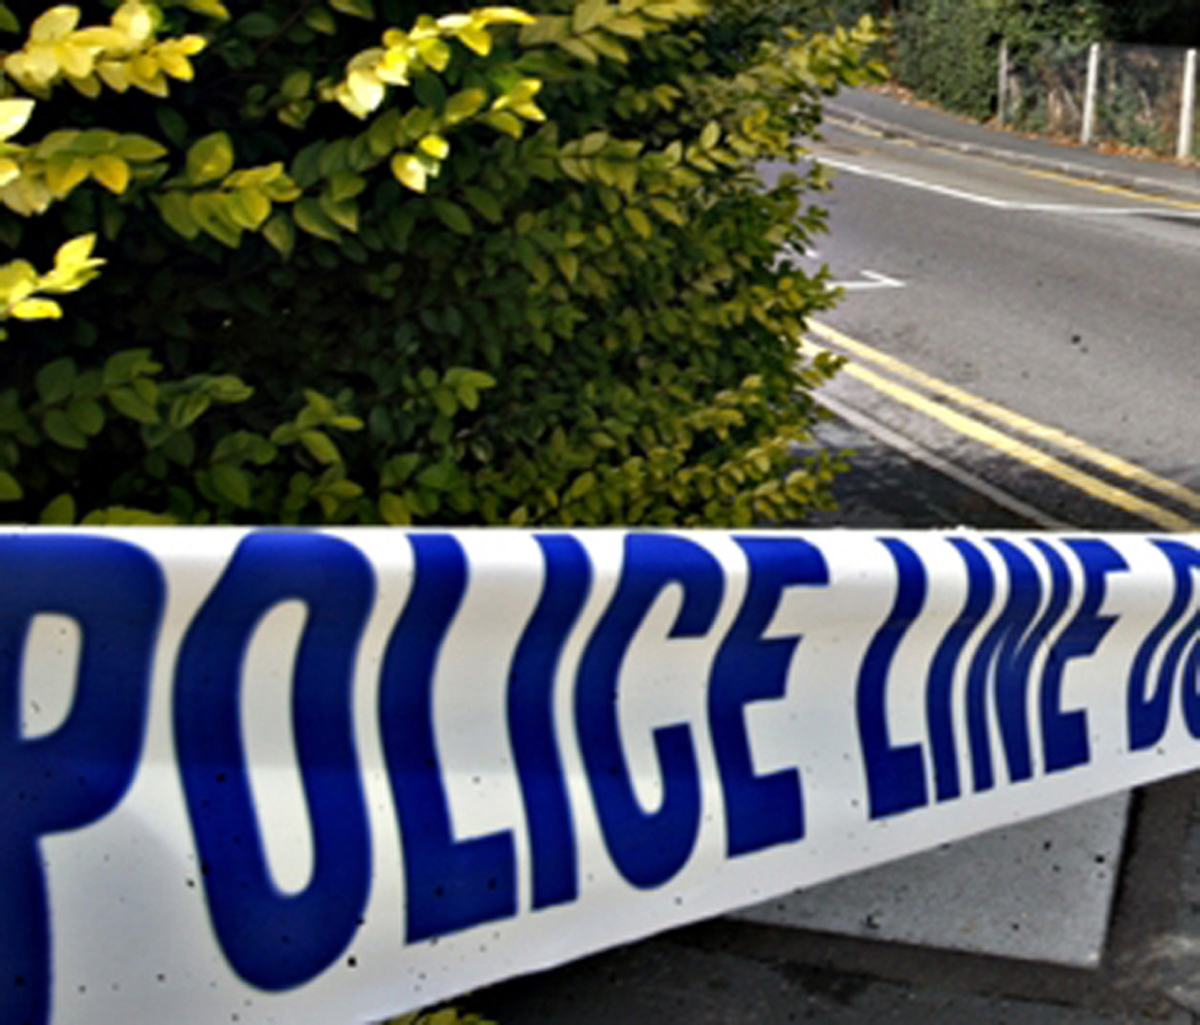 Police were called to a stabbing in Welling this afternoon.